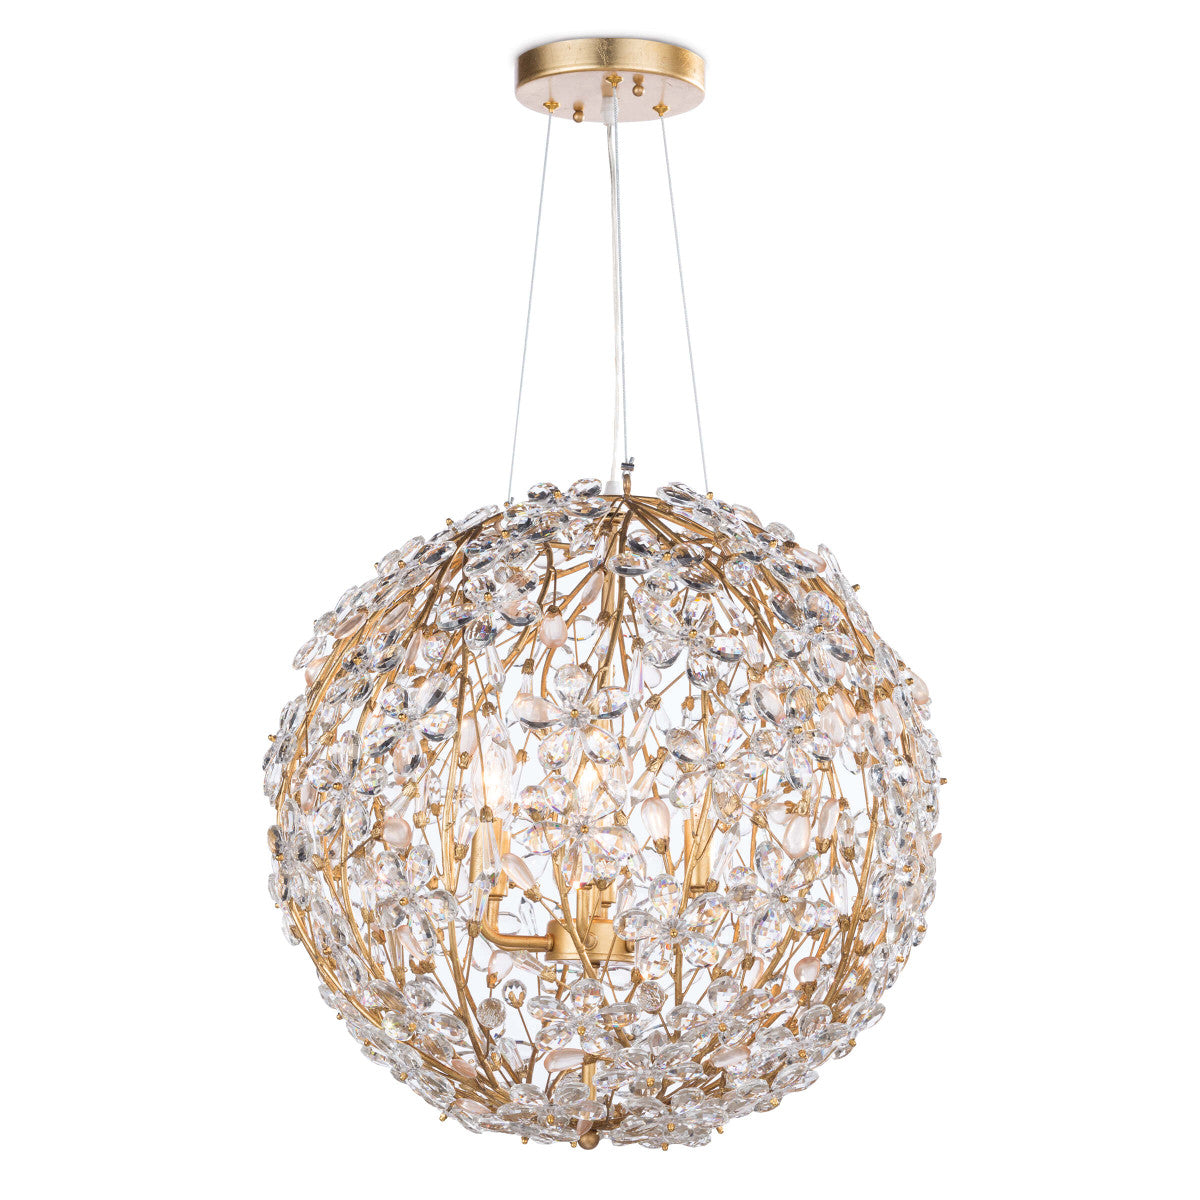 Cheshire Chandelier Small 16-1184